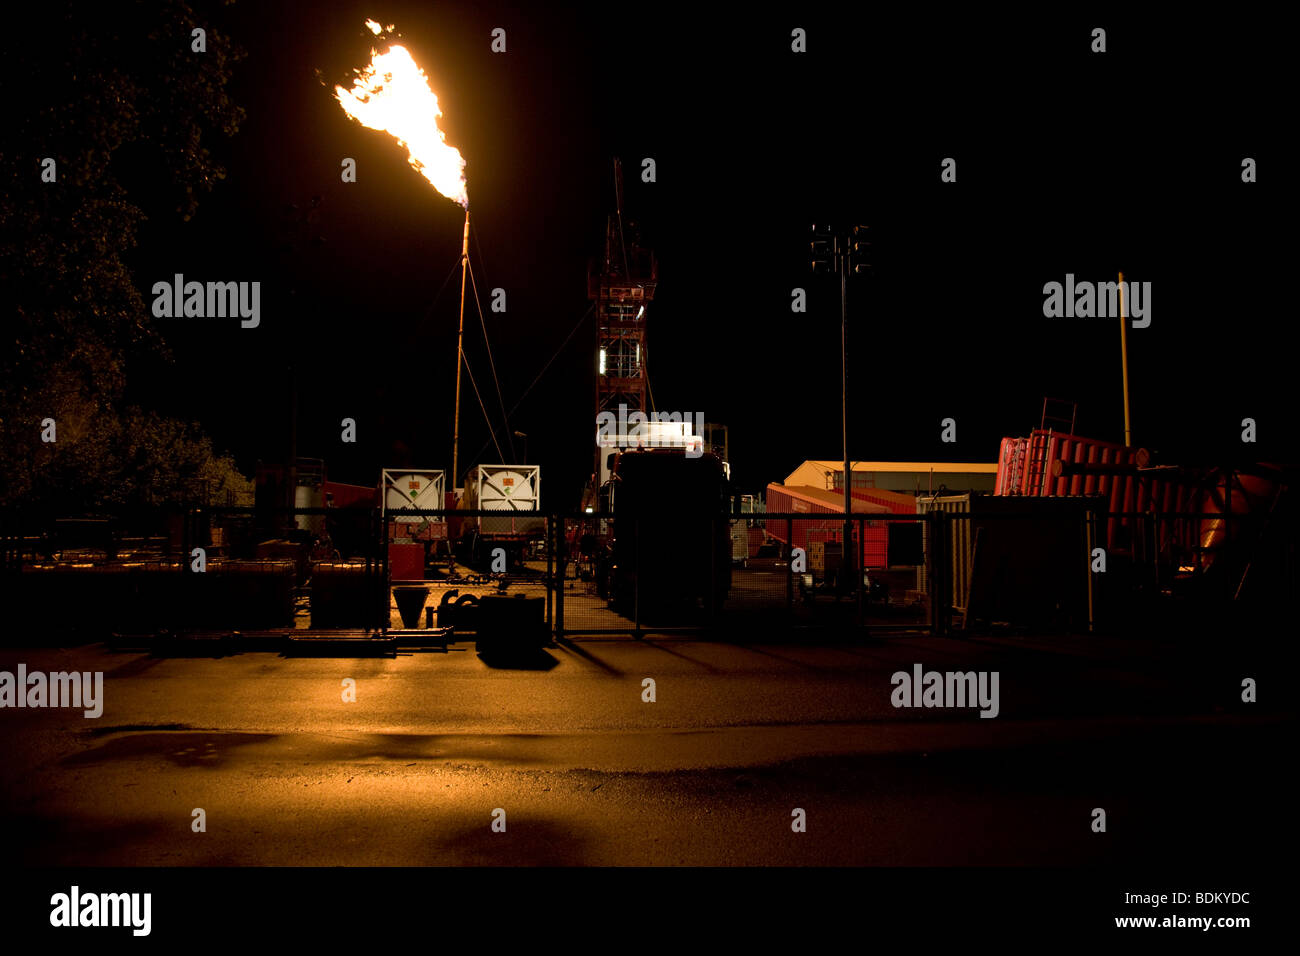 Gas flaring at a gas production site in Lower Saxony, Germany - Stock Image